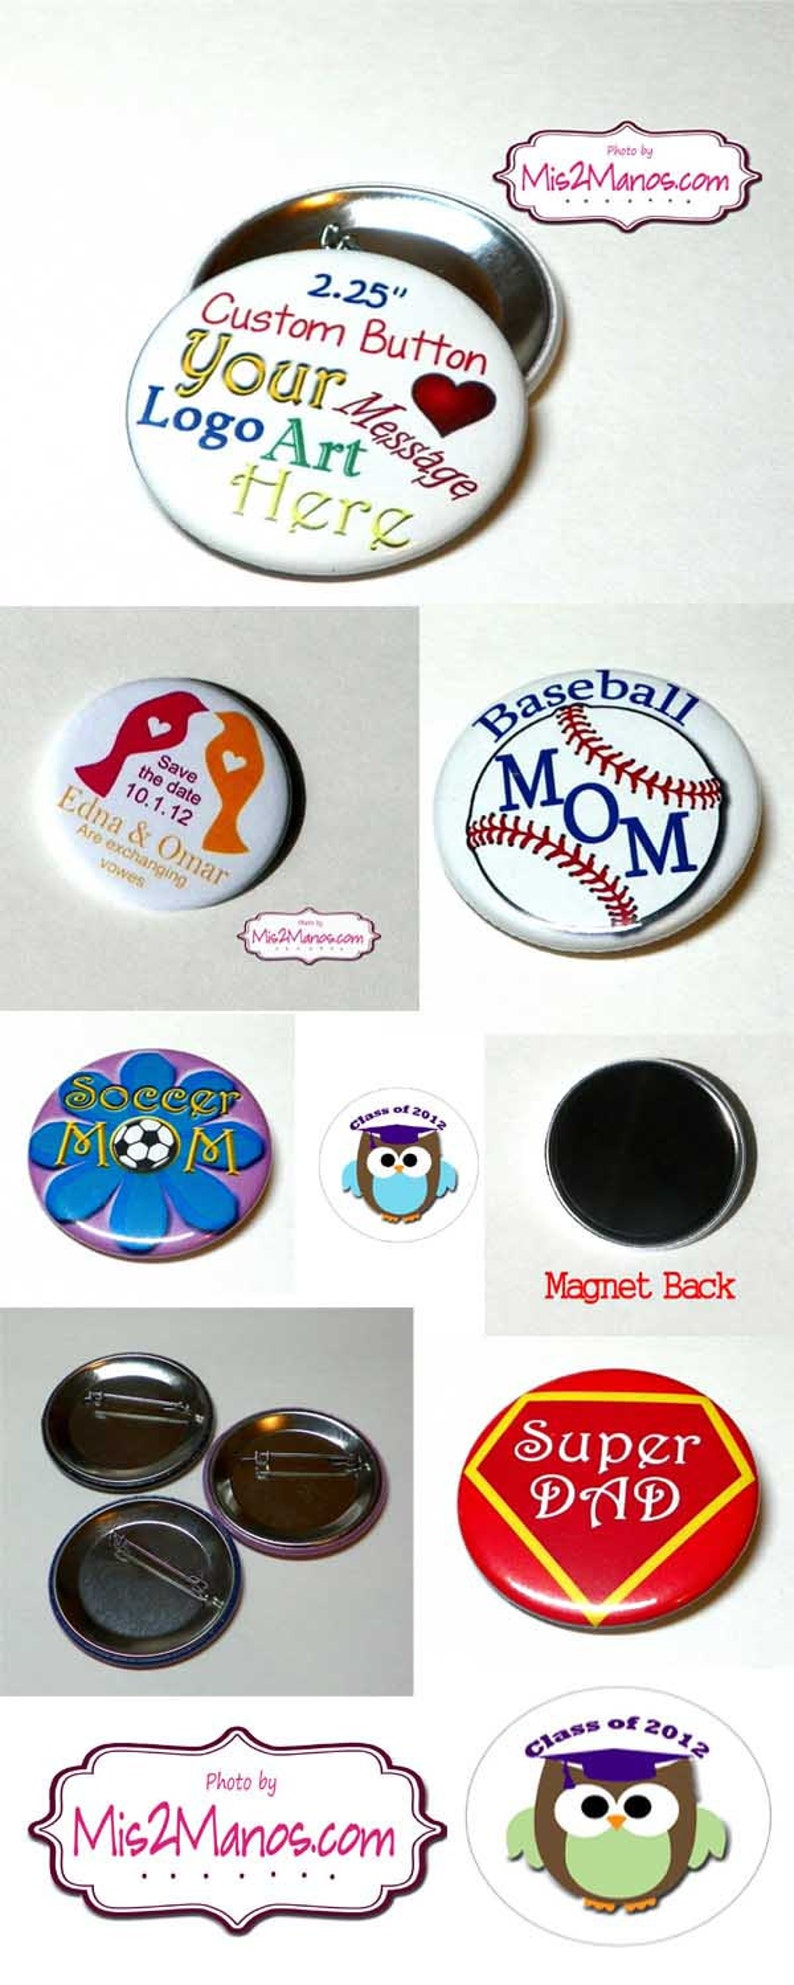 Last Sail before the Veil Custom Buttons Personalized Buttons Pin Back Promotional Buttons Set of 15